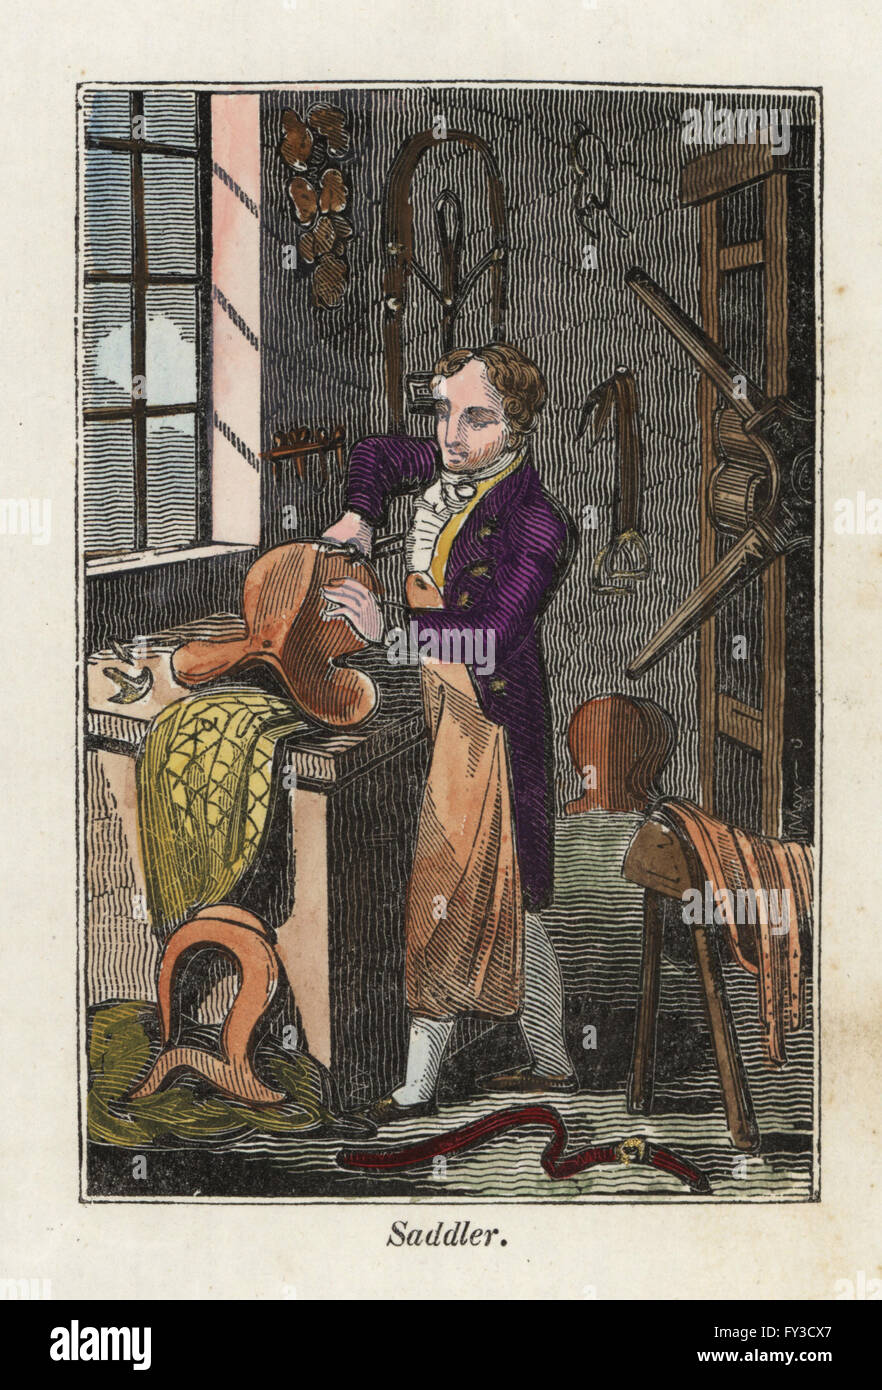 A saddler in leather apron making a saddle in his workshop. Handcoloured woodcut engraving from The Book of English - Stock Image